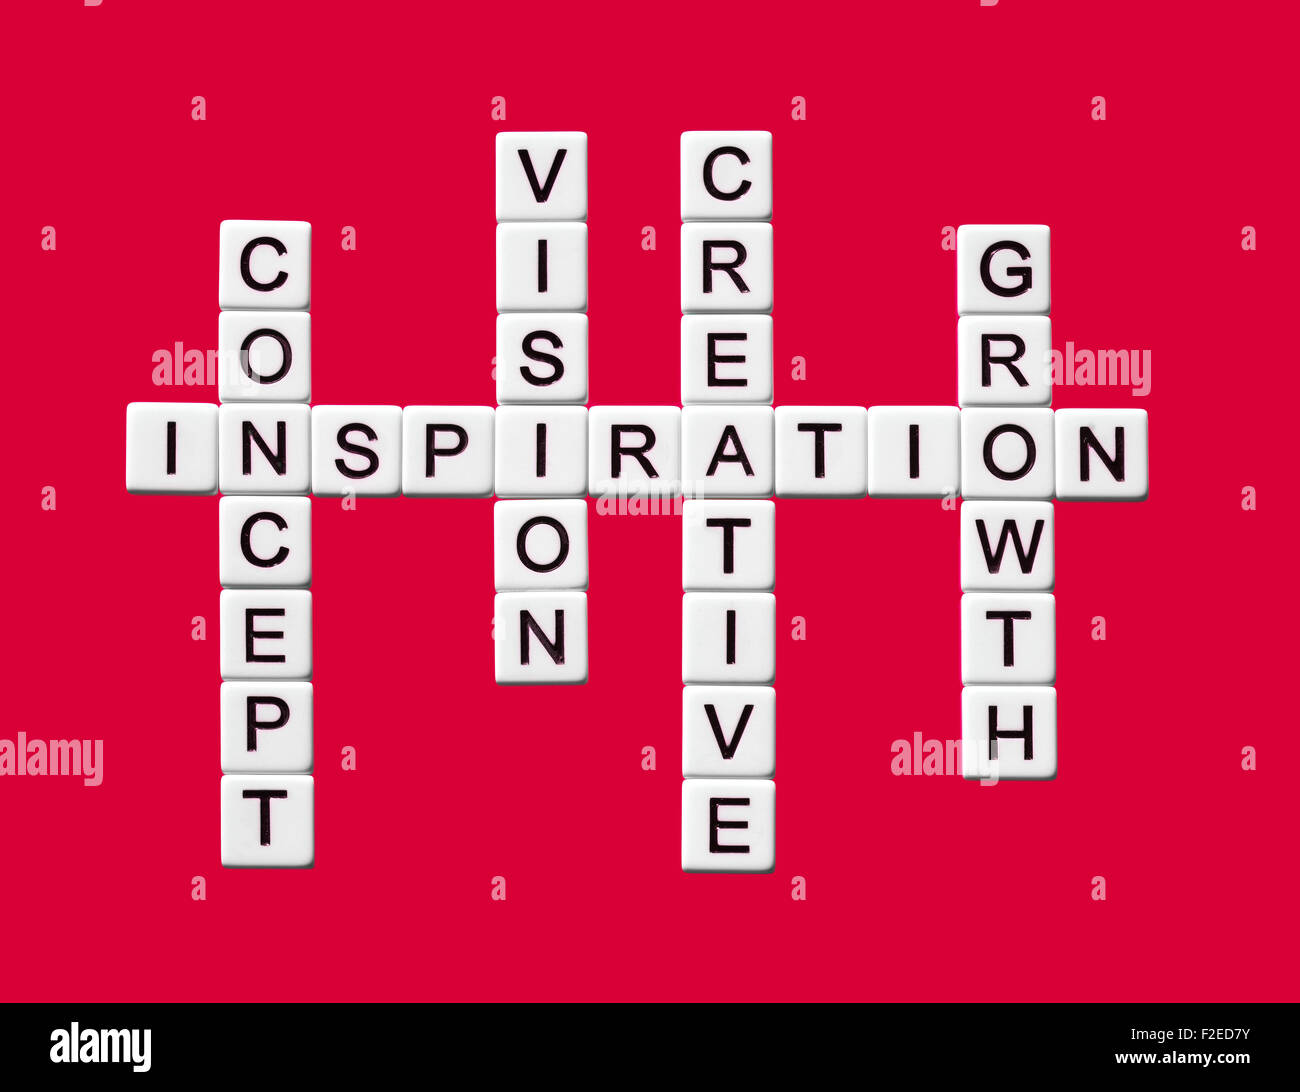 Business crossword with inspiration as the focus - Stock Image